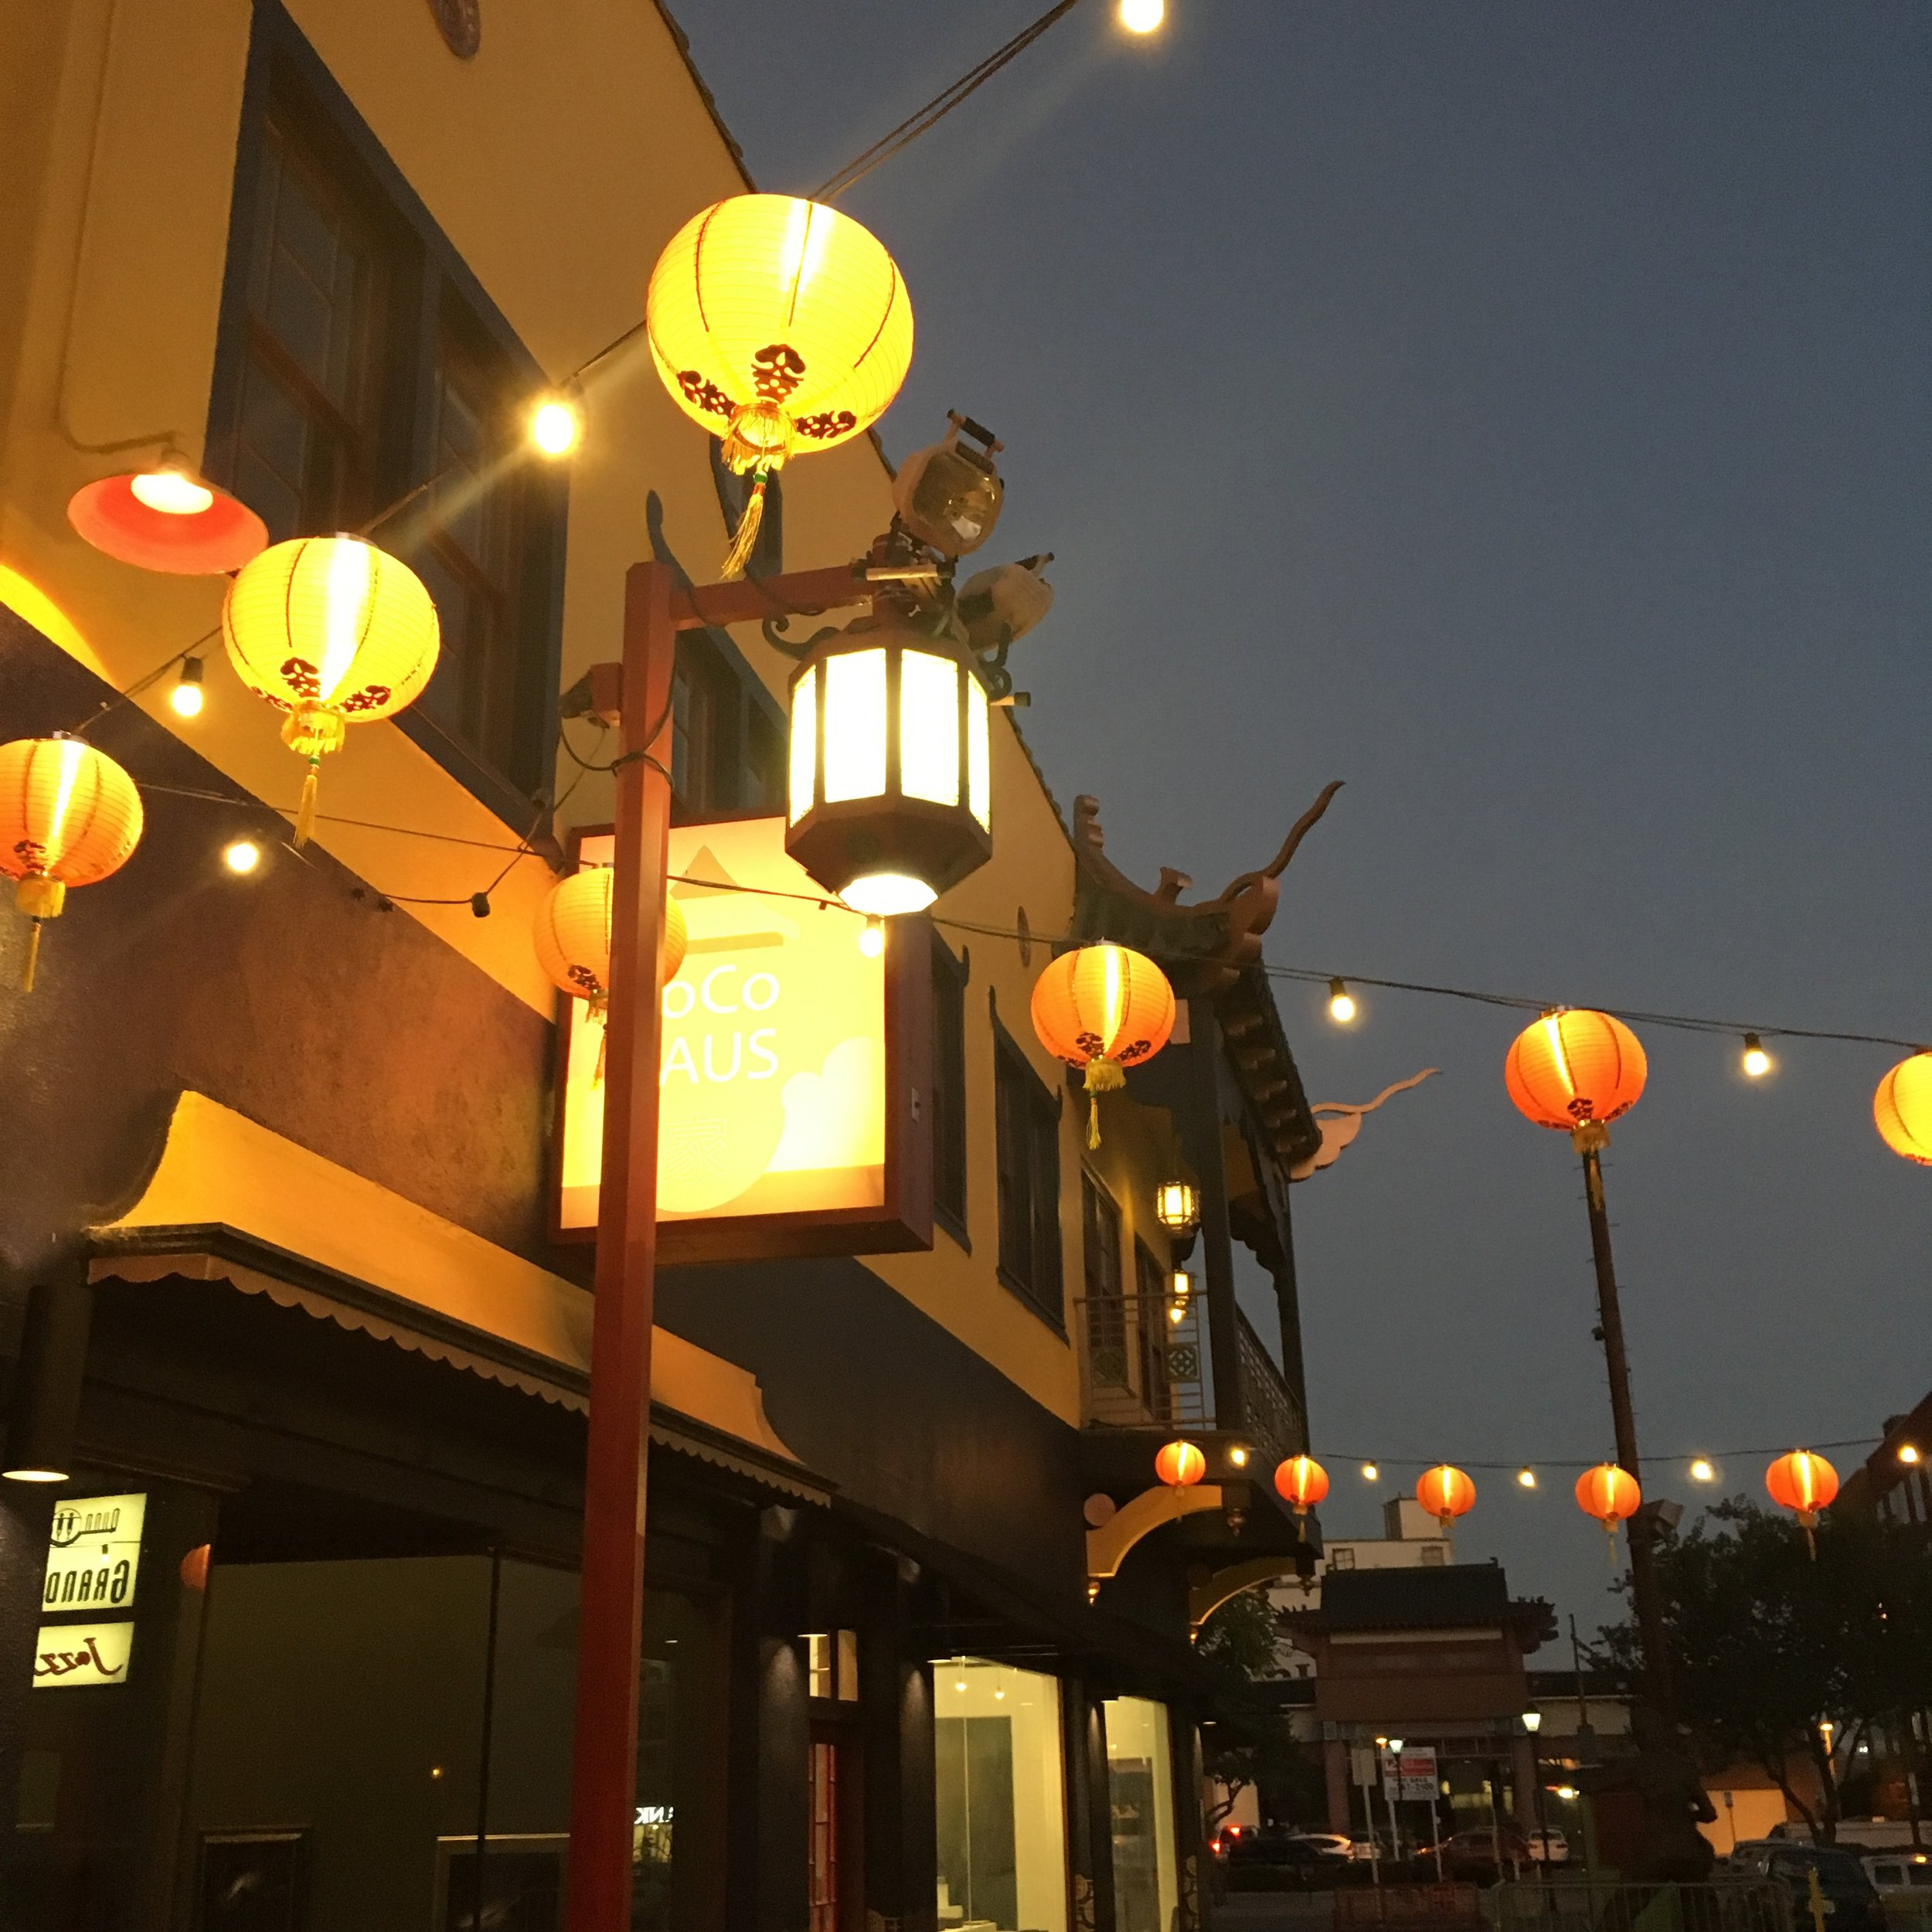 Friday: evening spent in Chinatown for #cometalktowe at Nous Tous. The topic of conversation was about self love